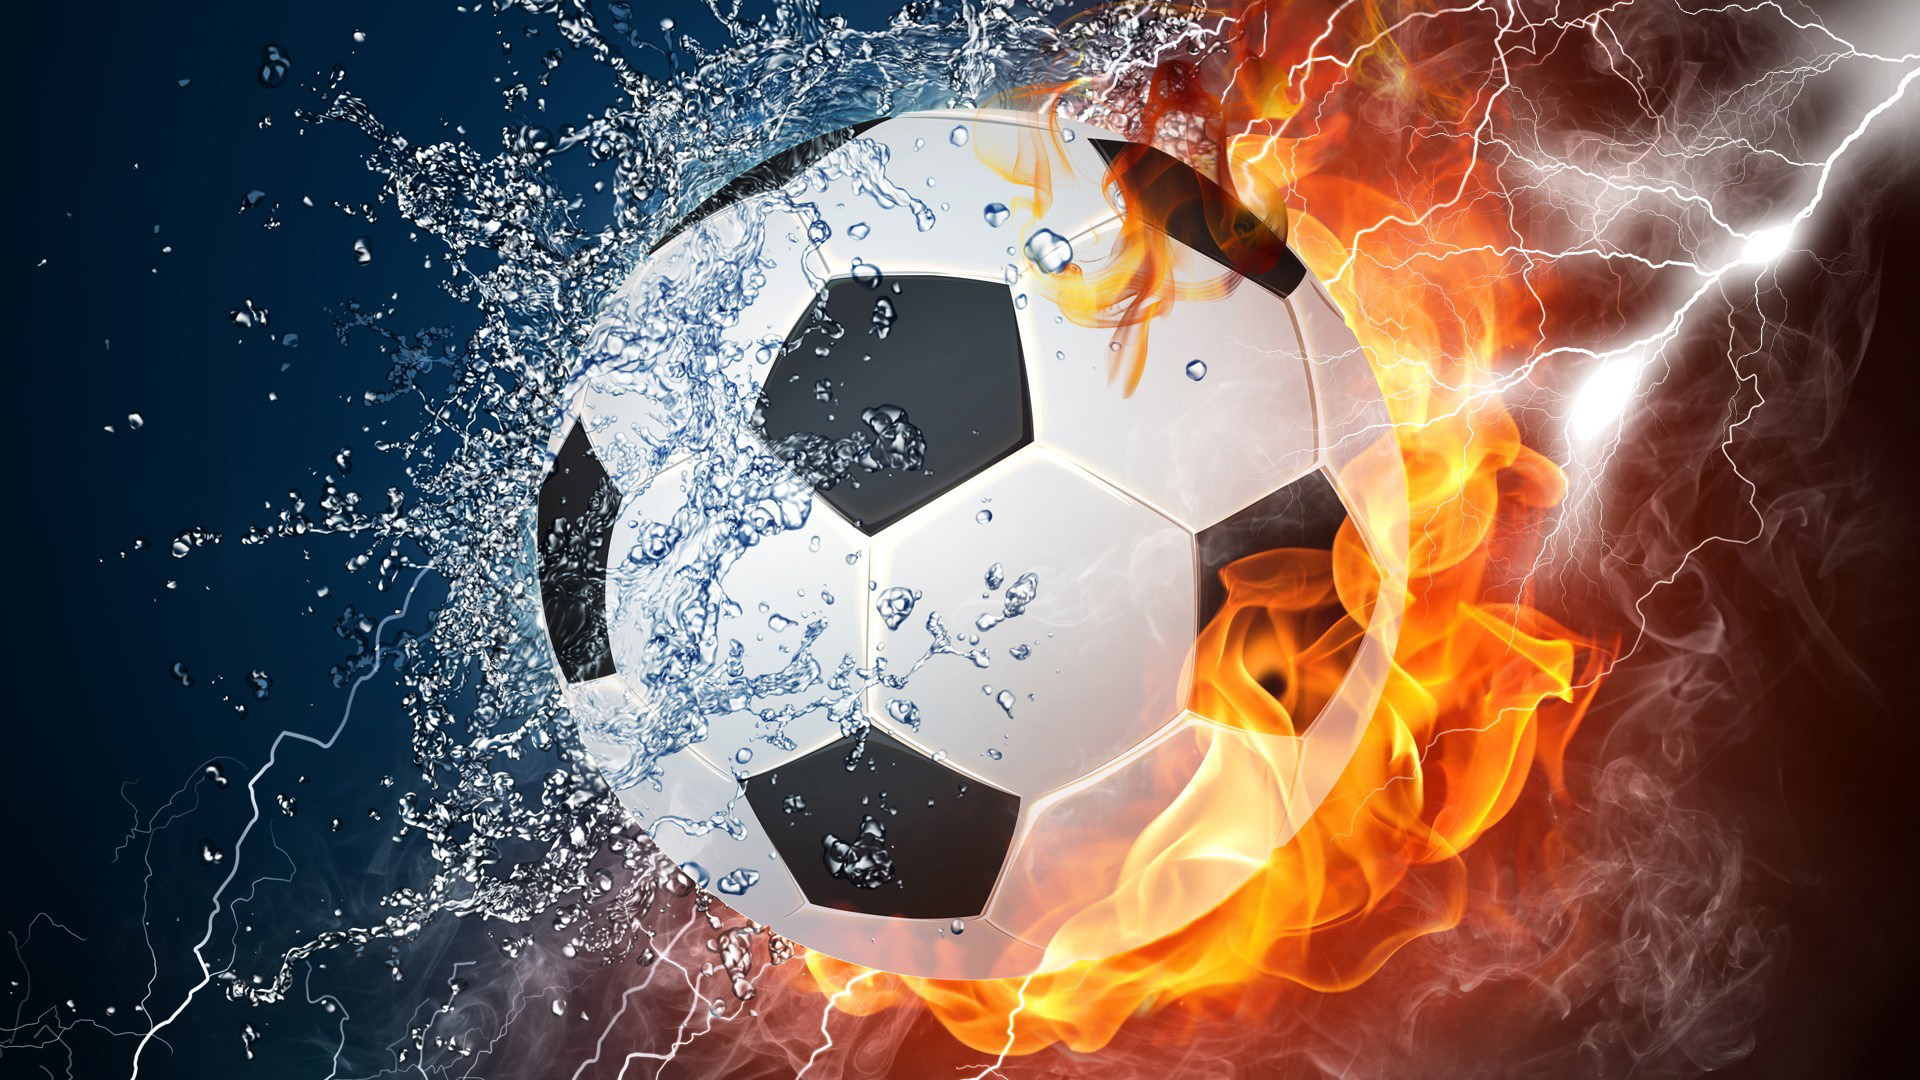 Football Soccer Wallpapers Group   Cool Soccer Backgrounds 1920x1080